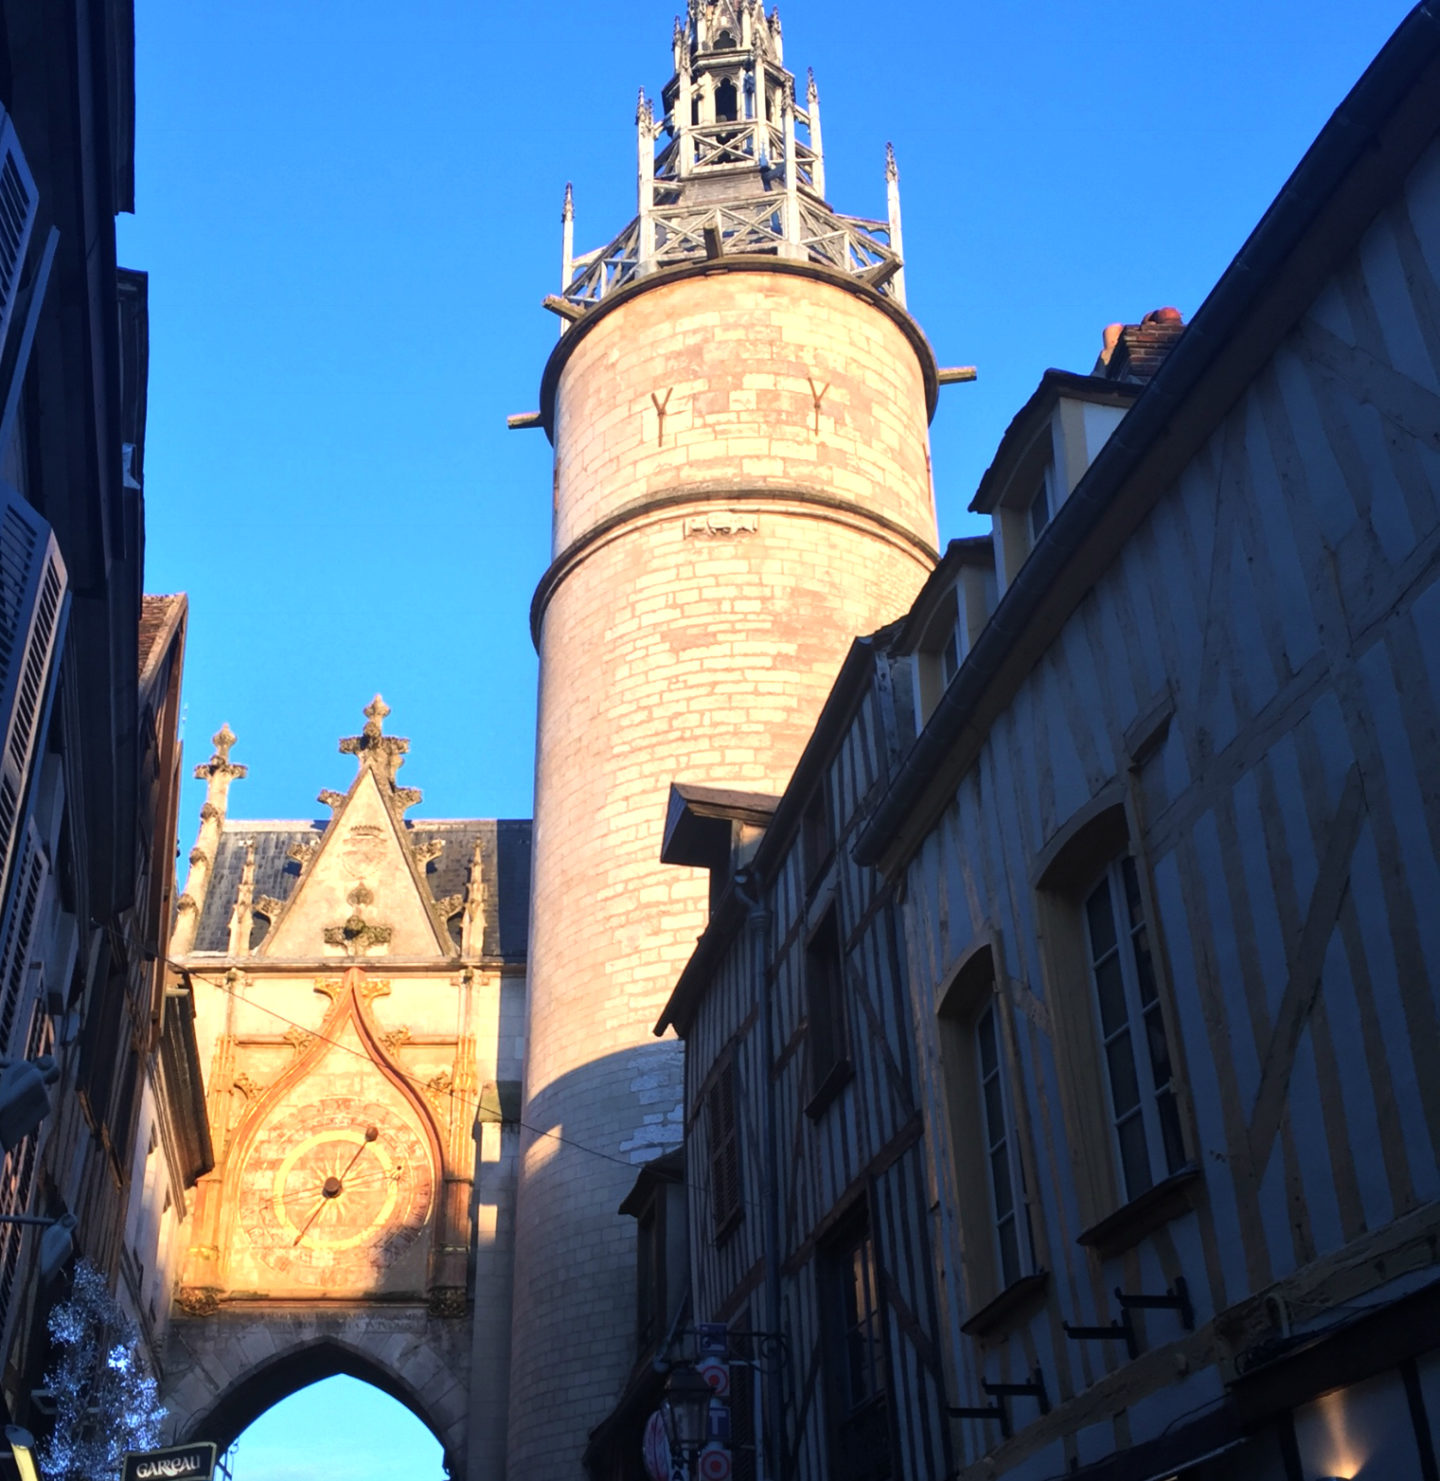 Our trip to Auxerre